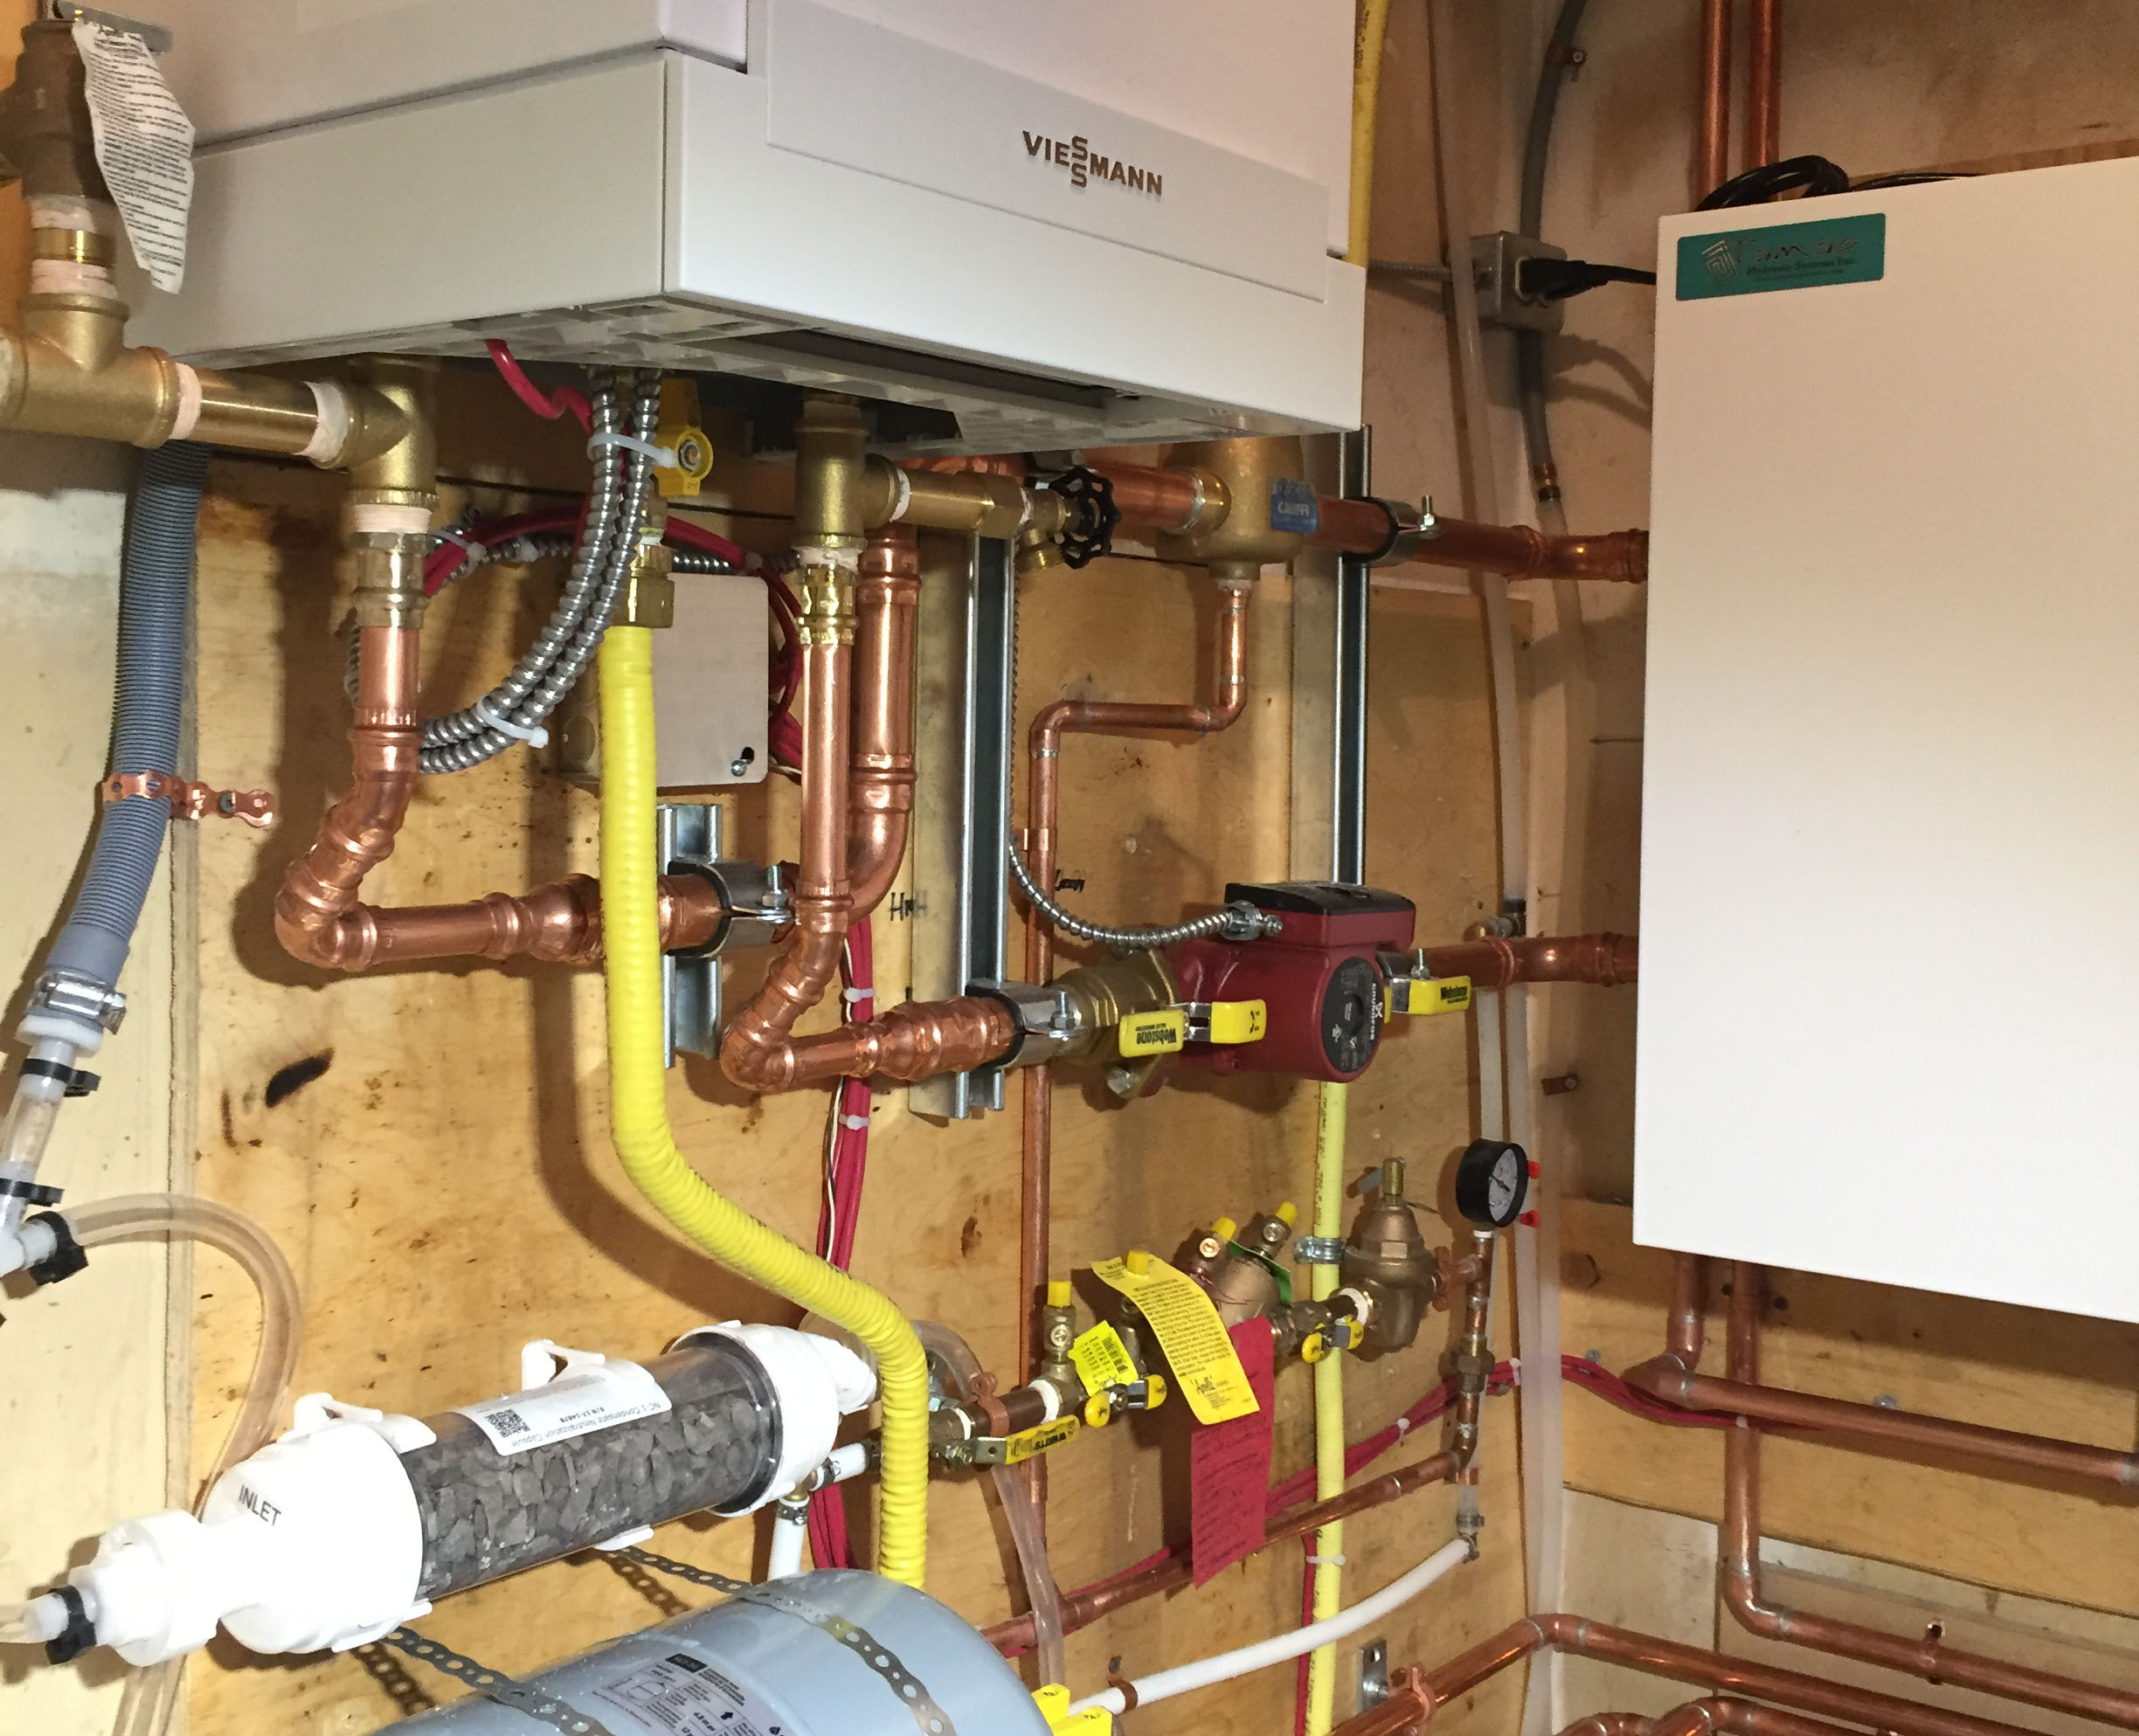 HYDRONIC HEATING - We service, repair and install tankless hot water systems.  Our technicians will service your system to ensure optimal operation.